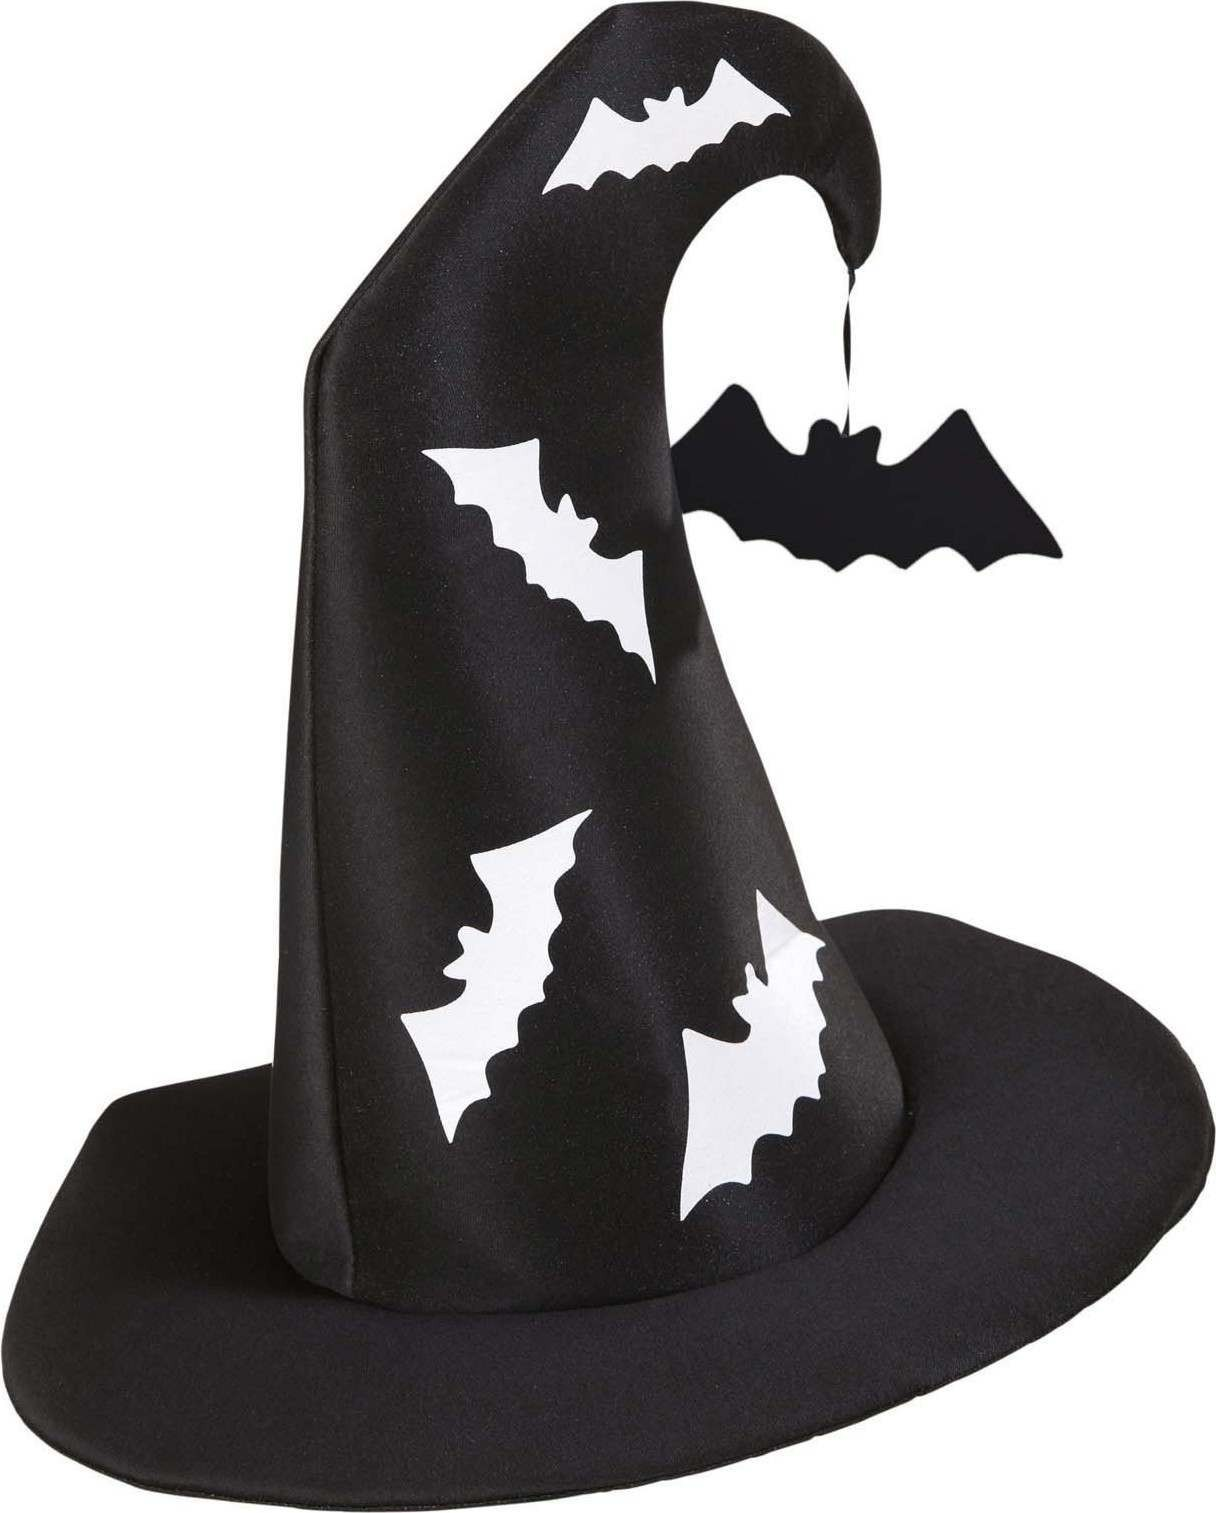 Witch Hats With Bats Hats